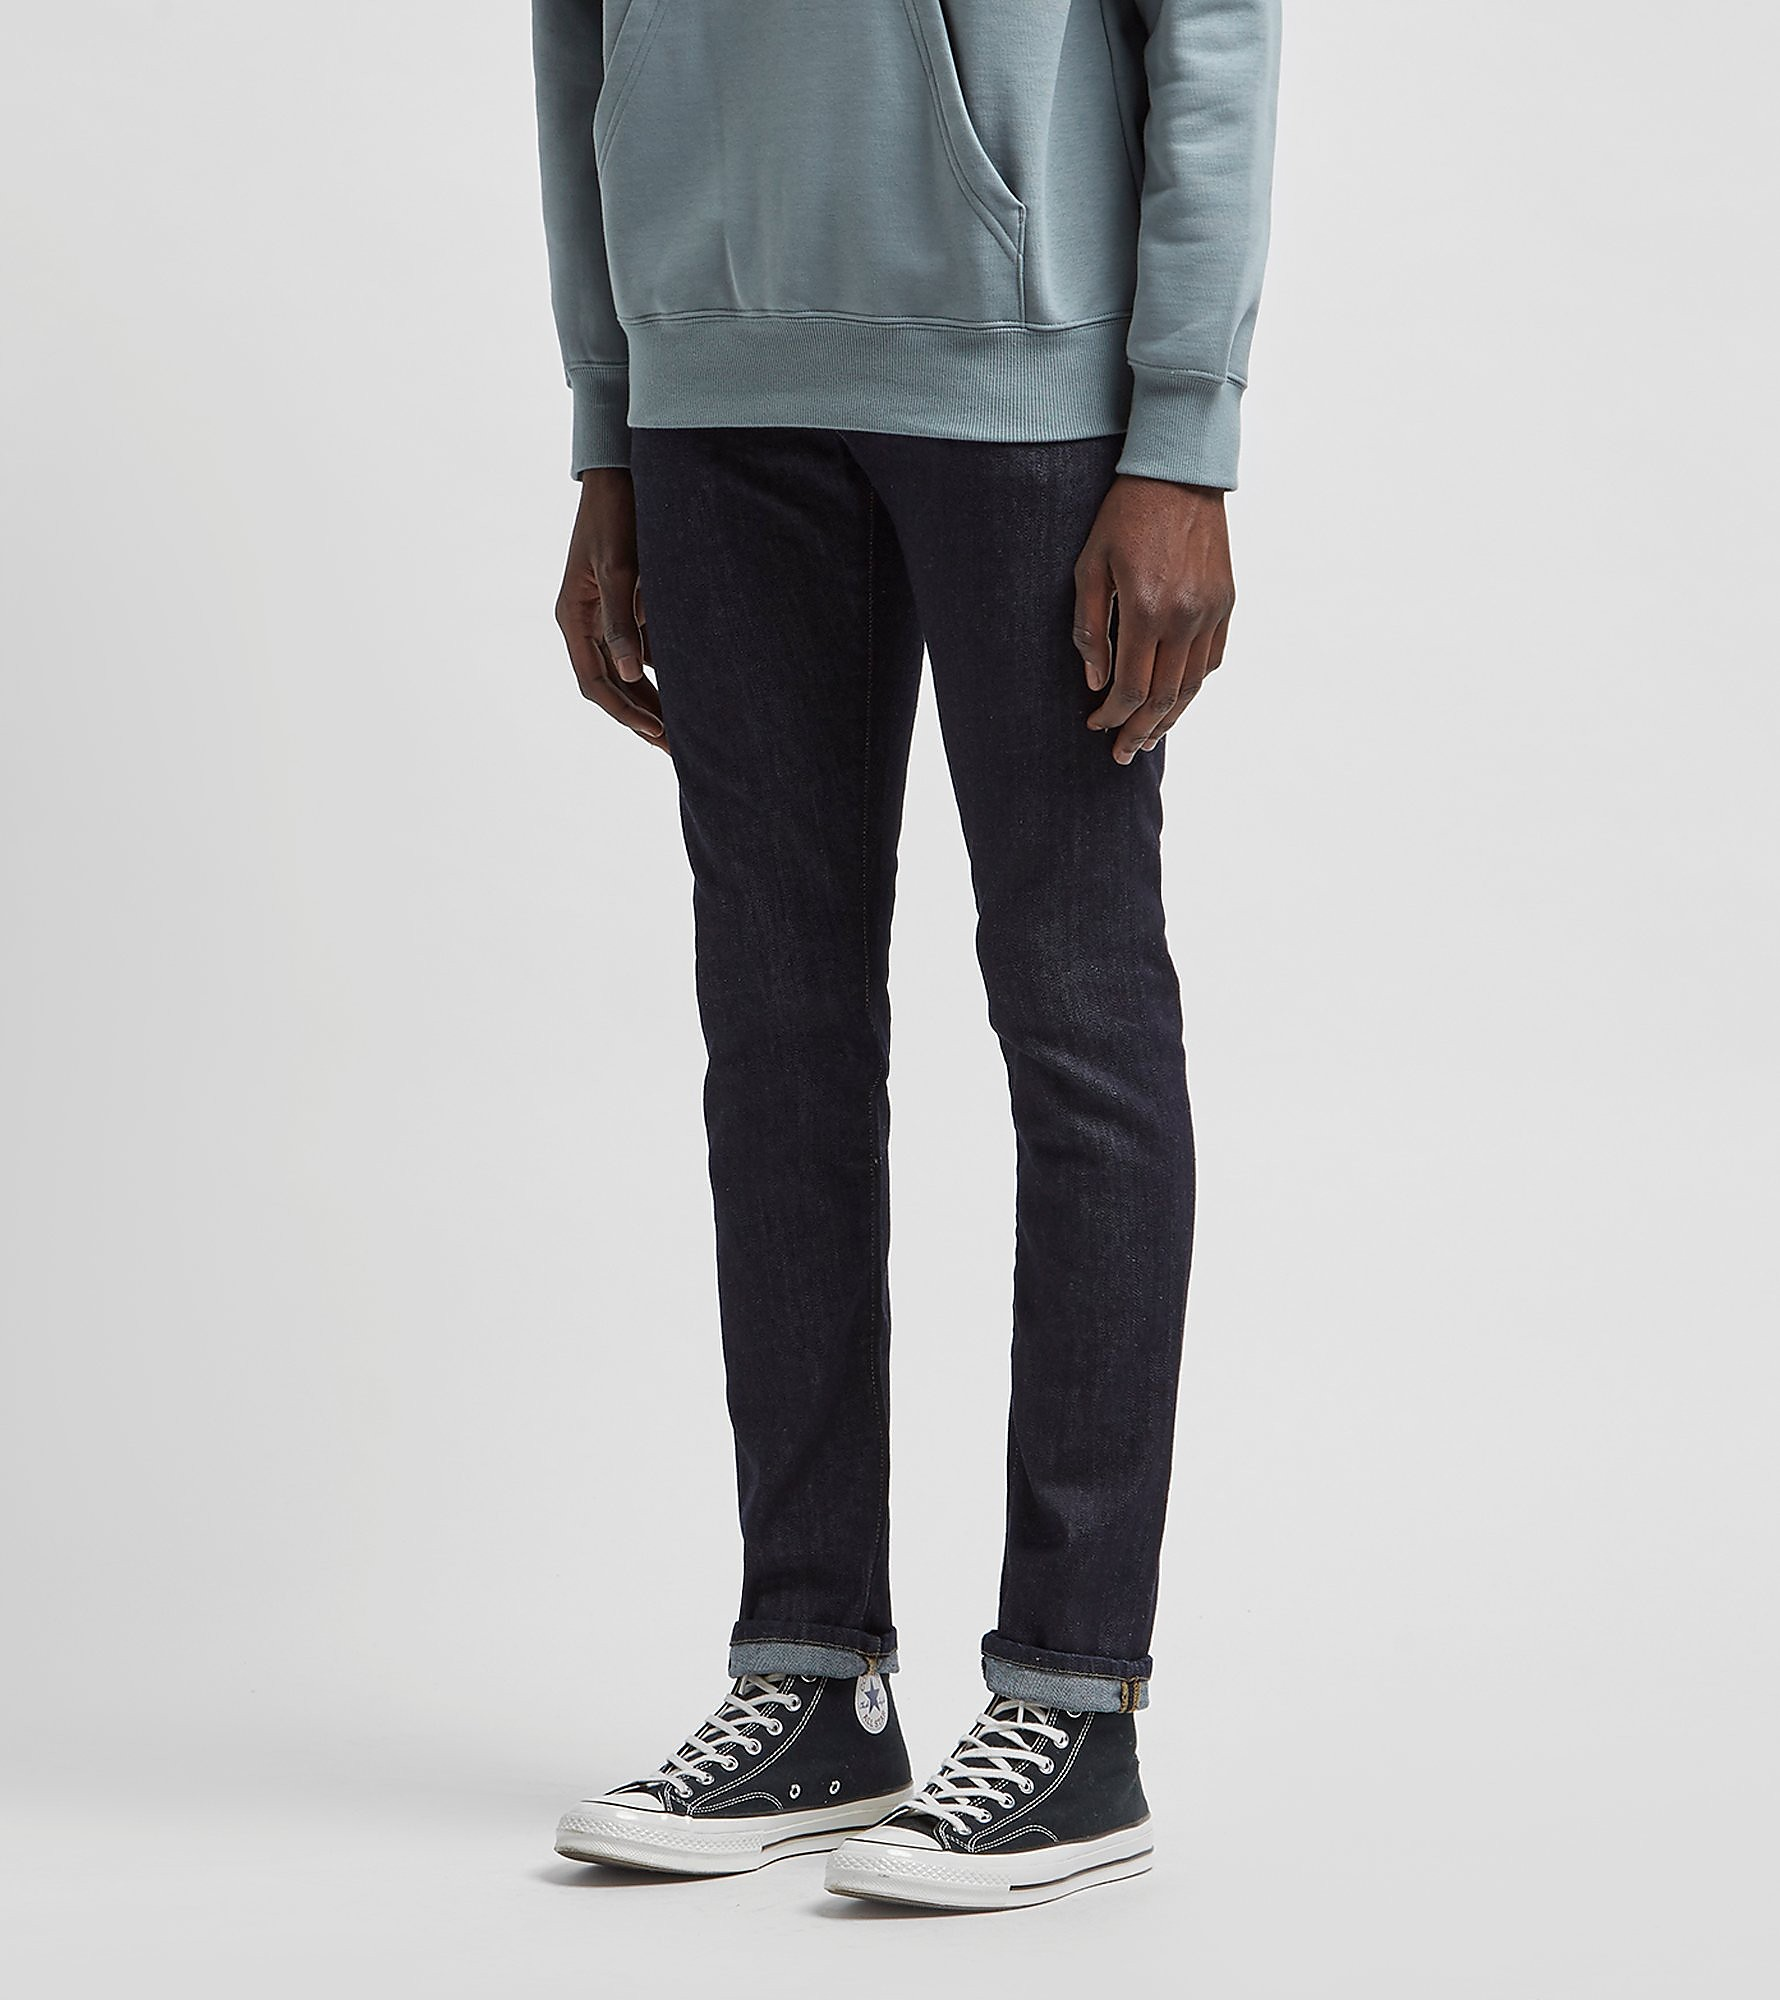 Carhartt WIP Rebel Regular Tapered Jeans